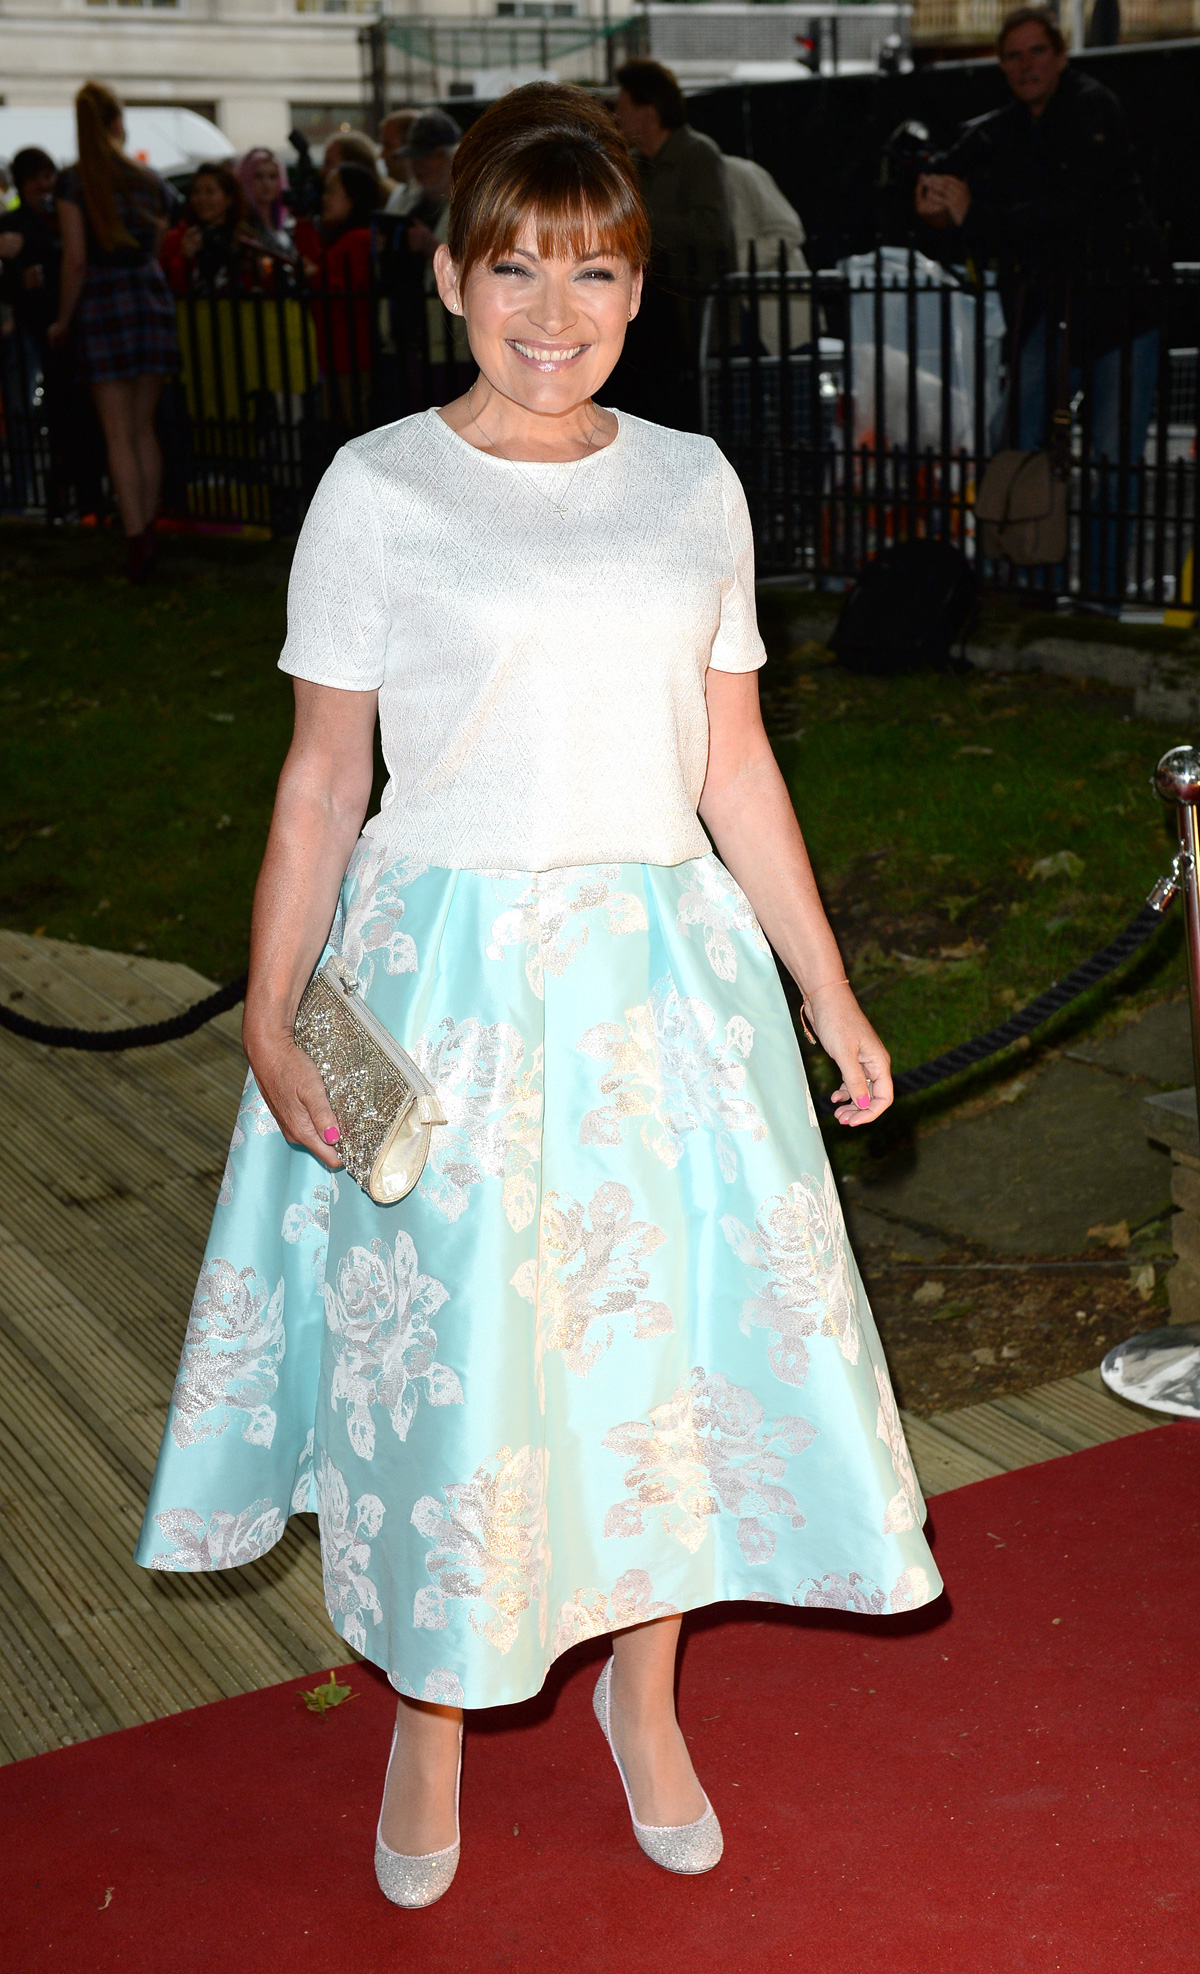 Lorraine Kelly at the Glamour Women of the Year Awards